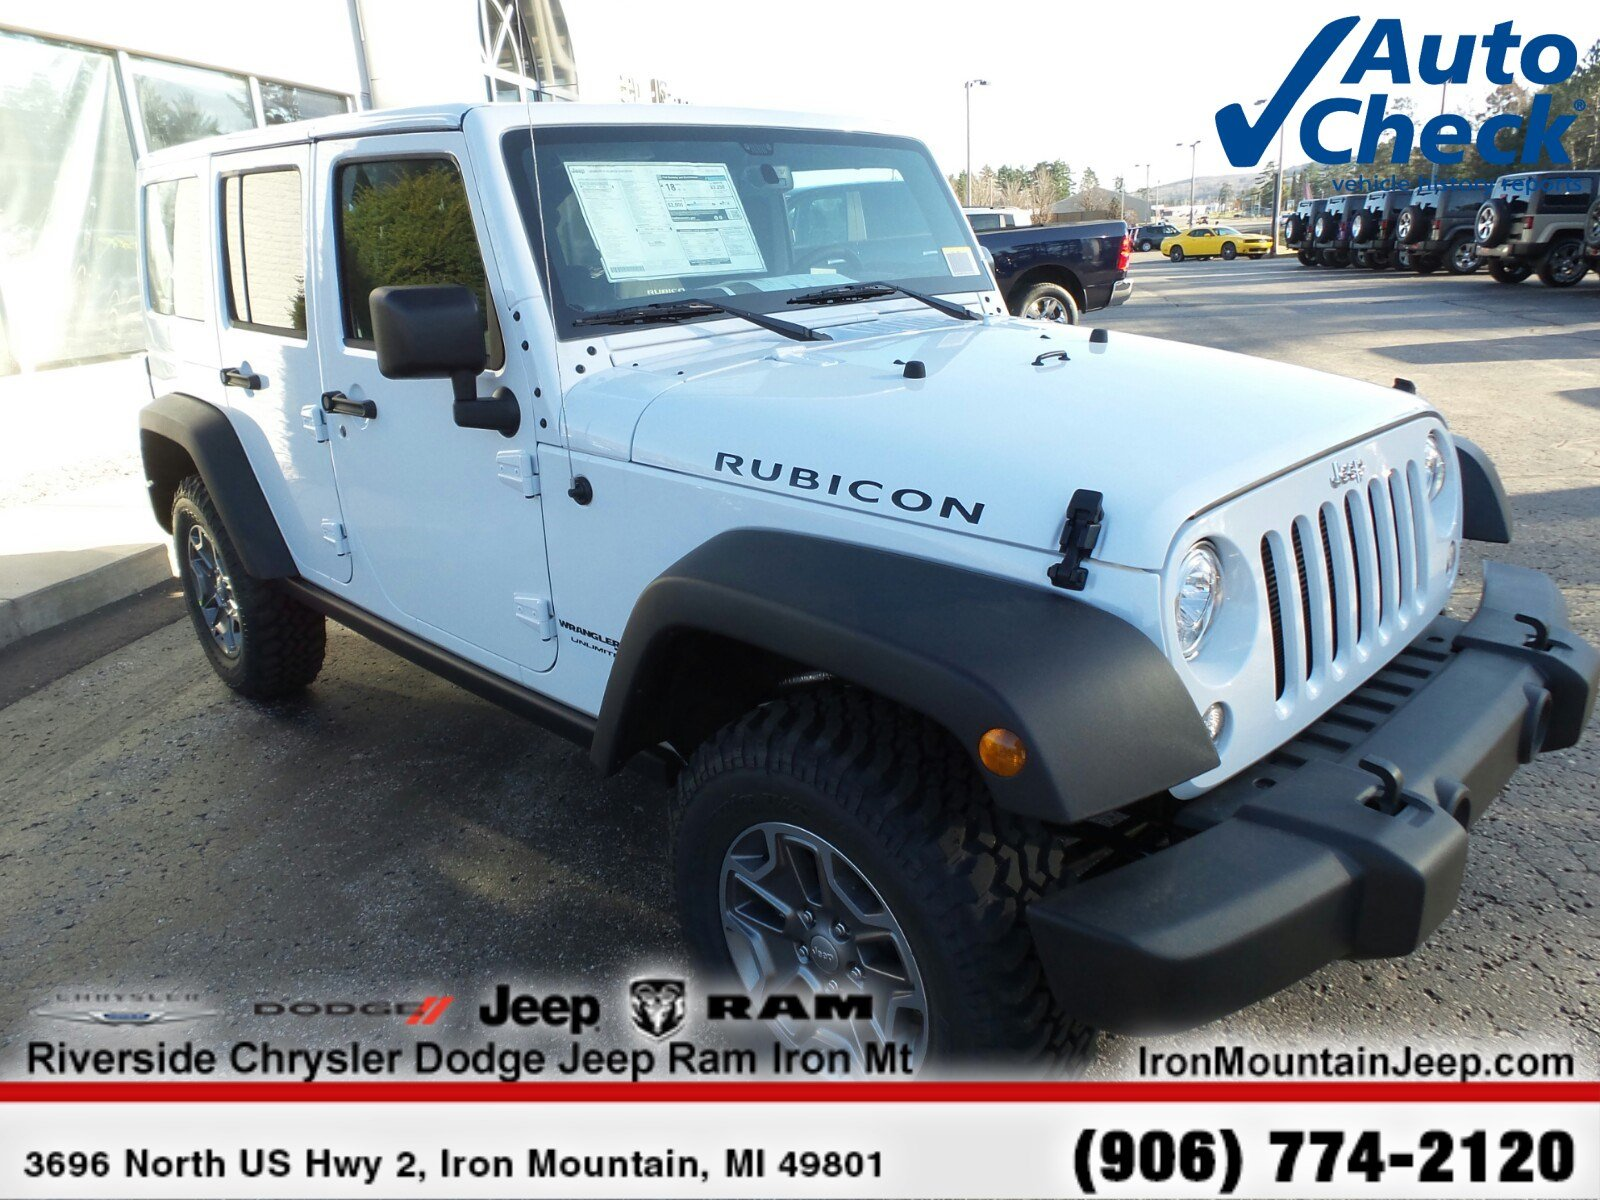 Nice 2018 Jeep Wrangler Unlimited WRANGLER JK UNLIMITED RUBICON 4X4